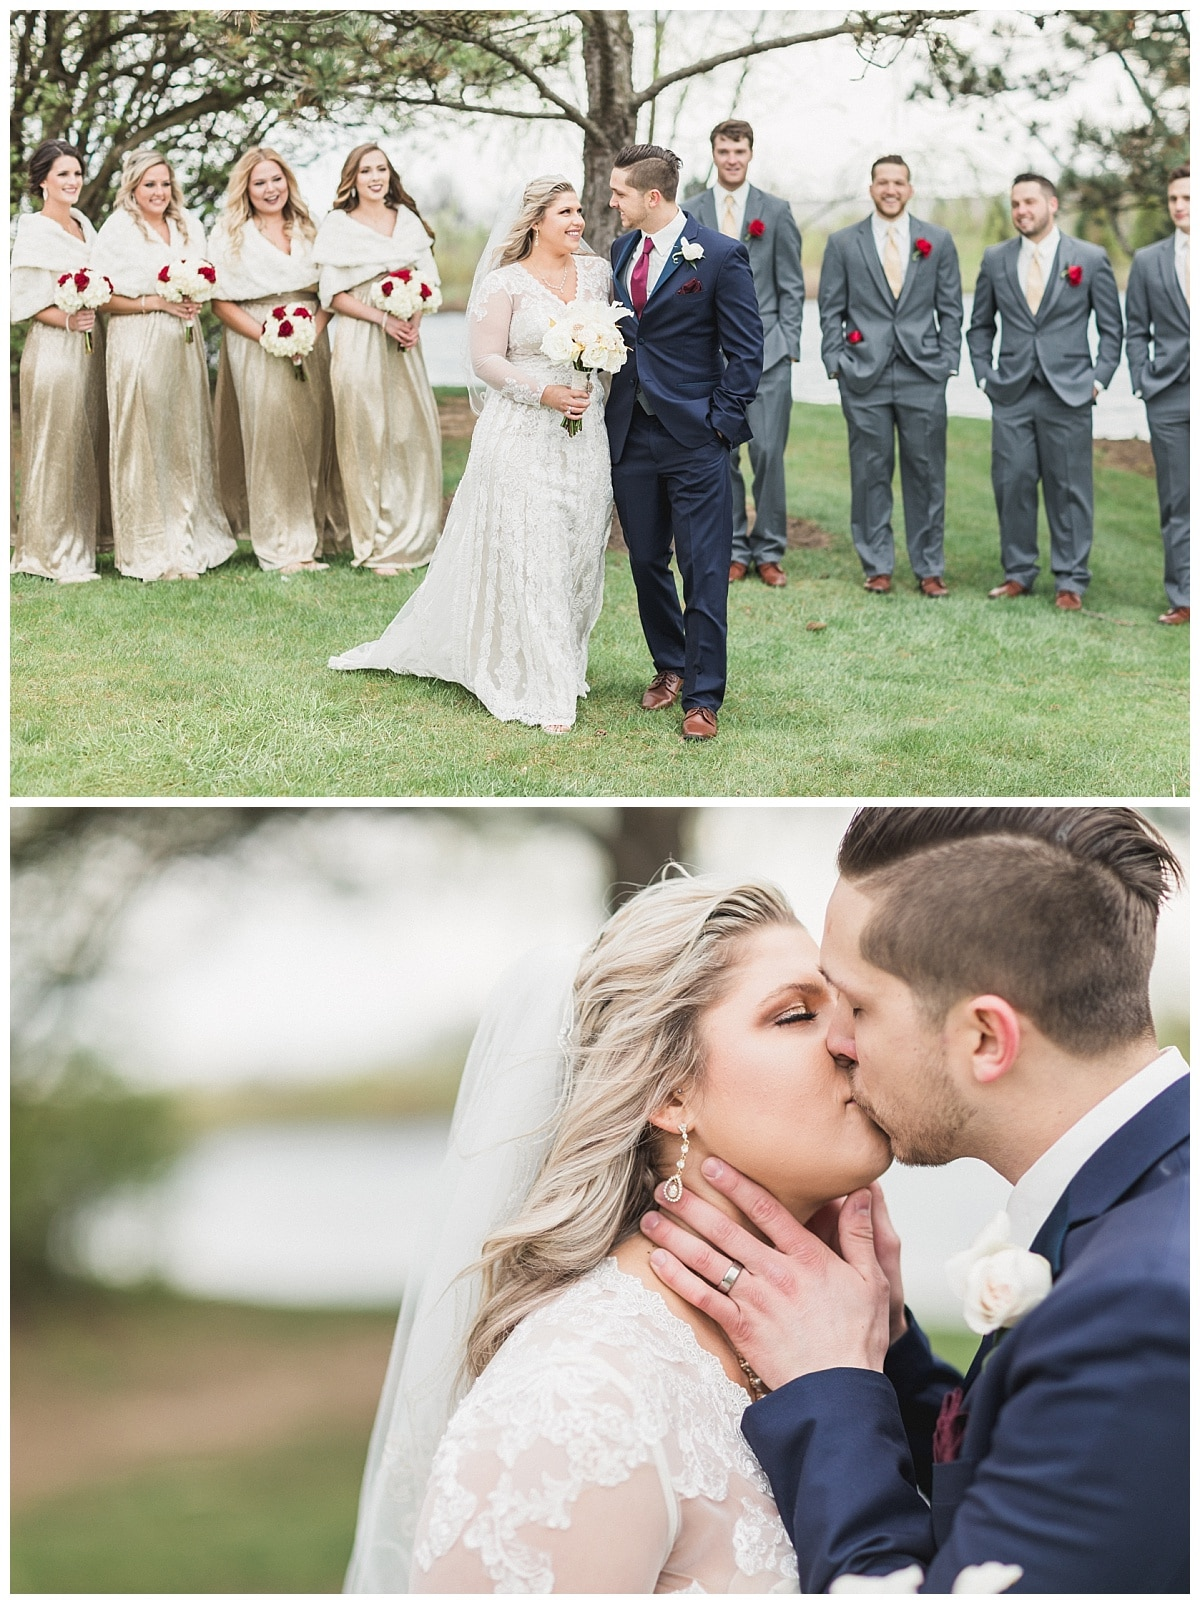 Bride and Groom wedding photo ideas